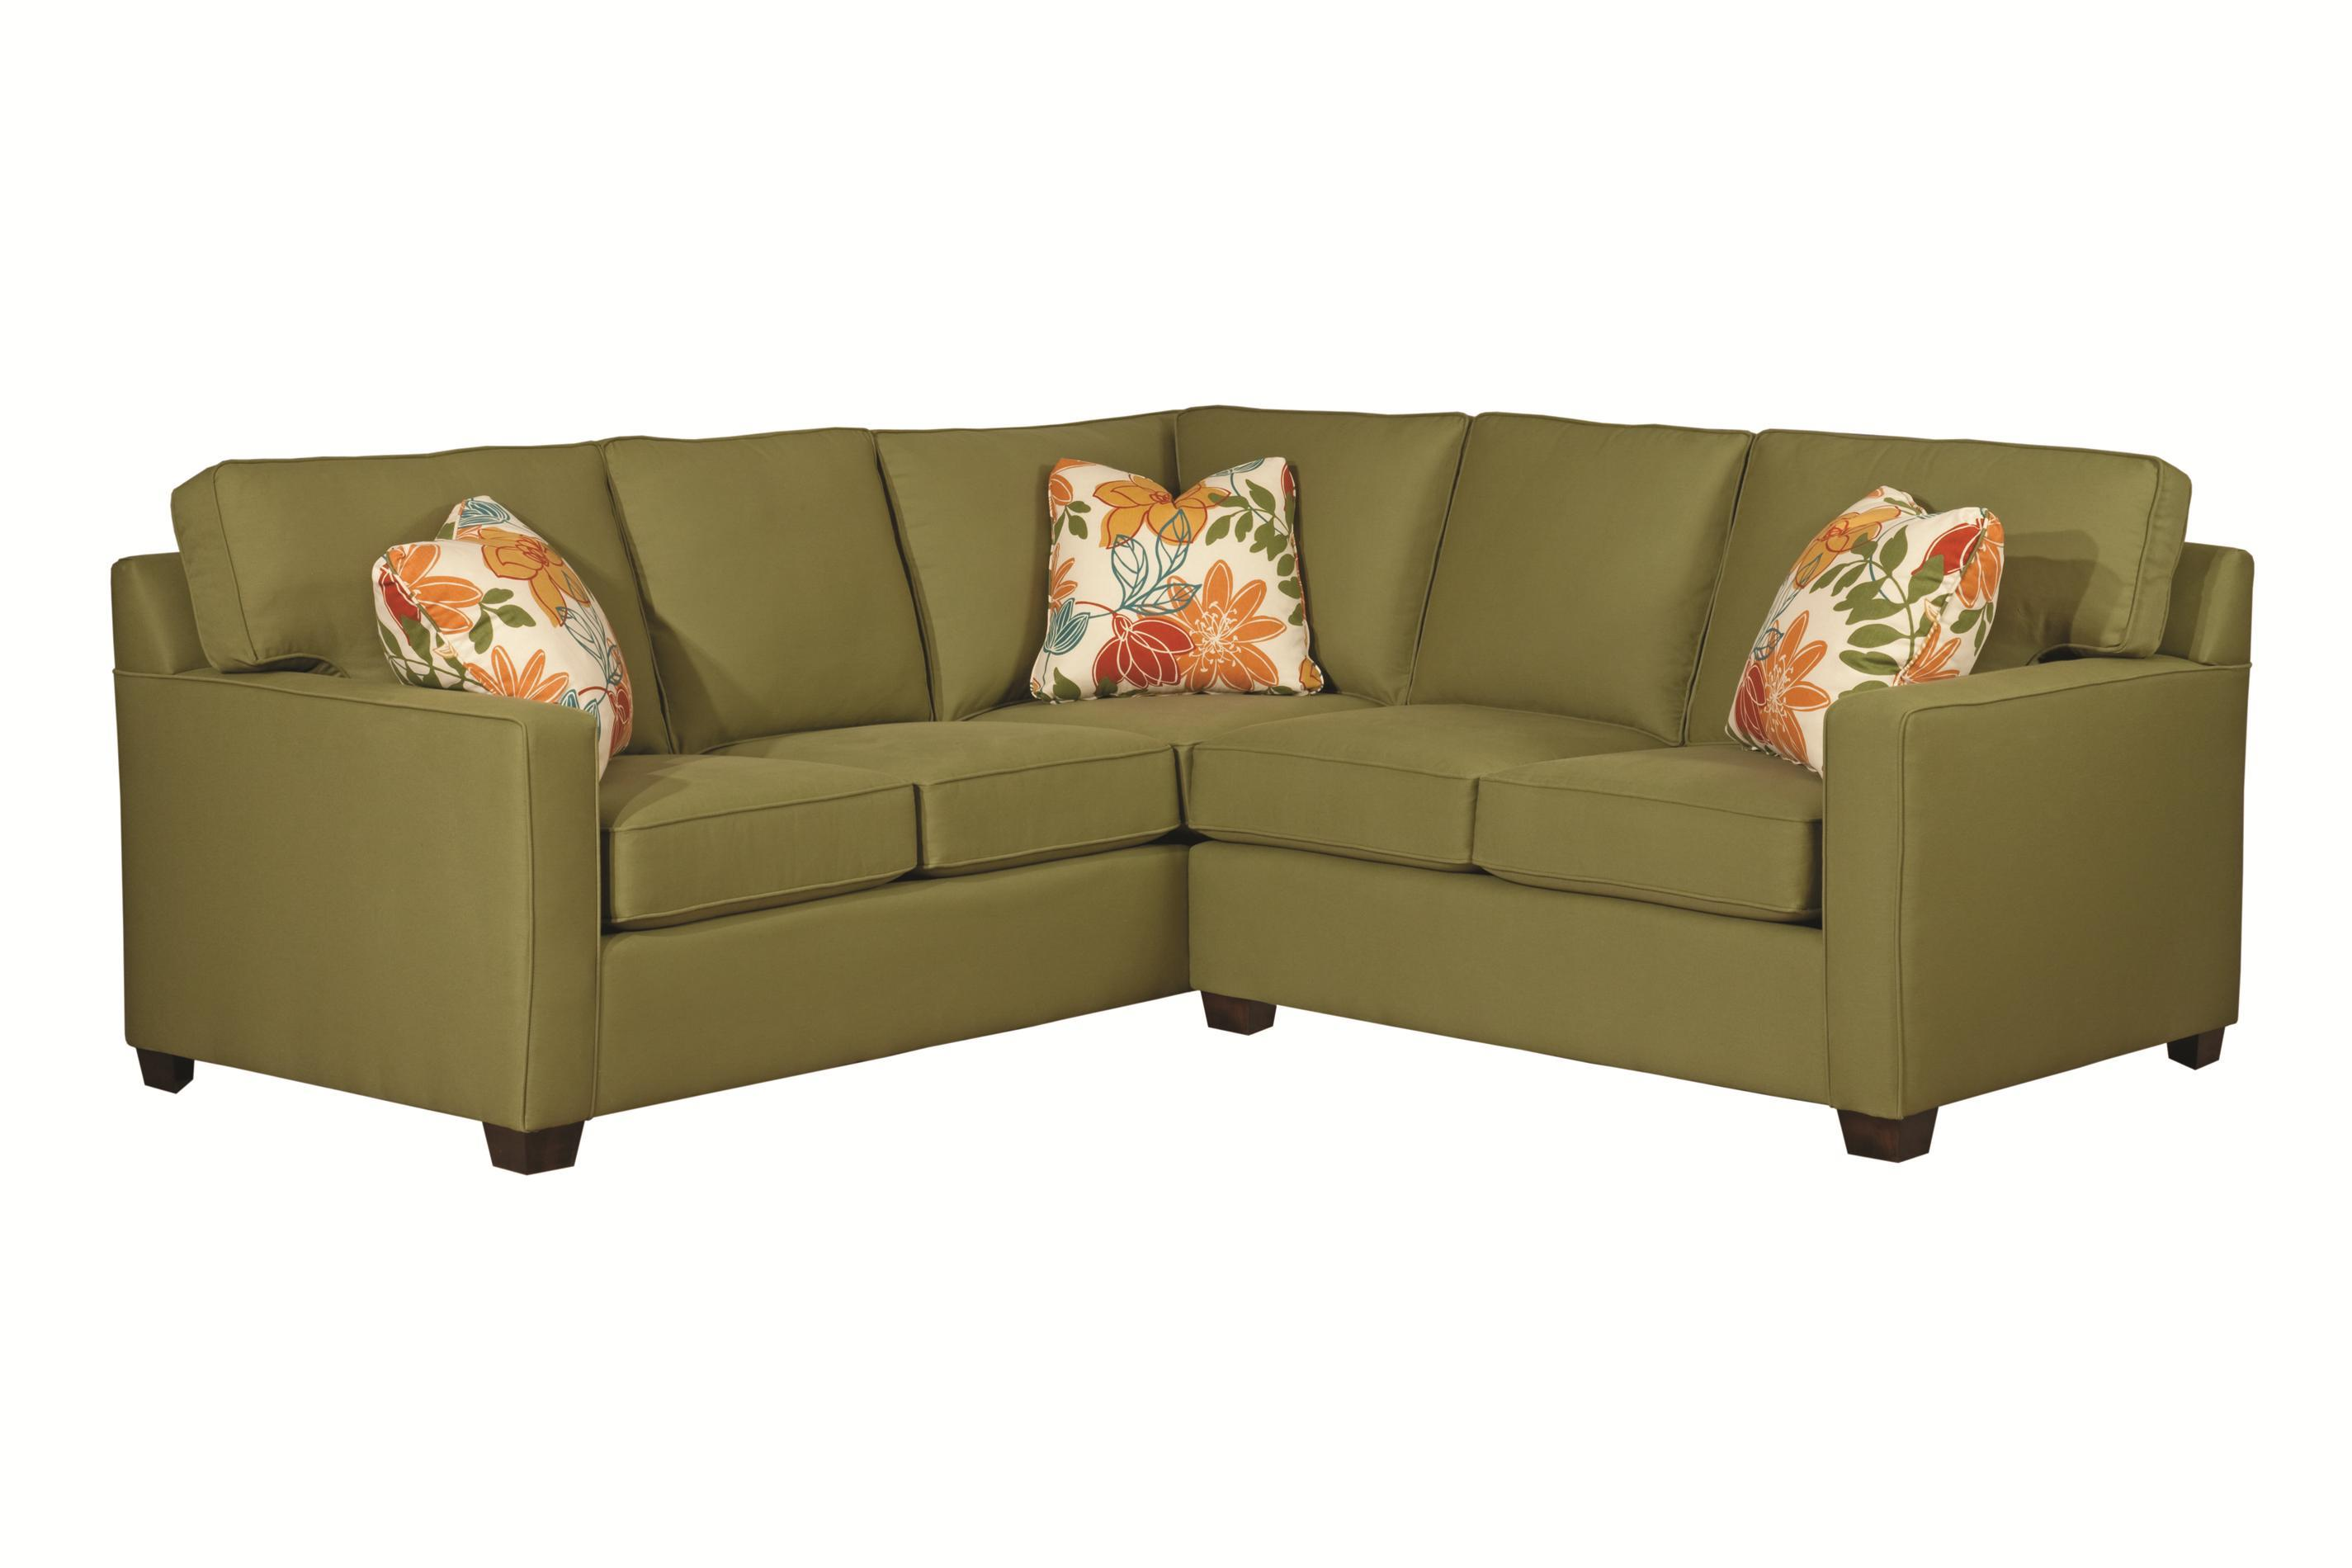 kincaid furniture brooke two piece sectional sofa hudson With kincaid furniture sectional sofa